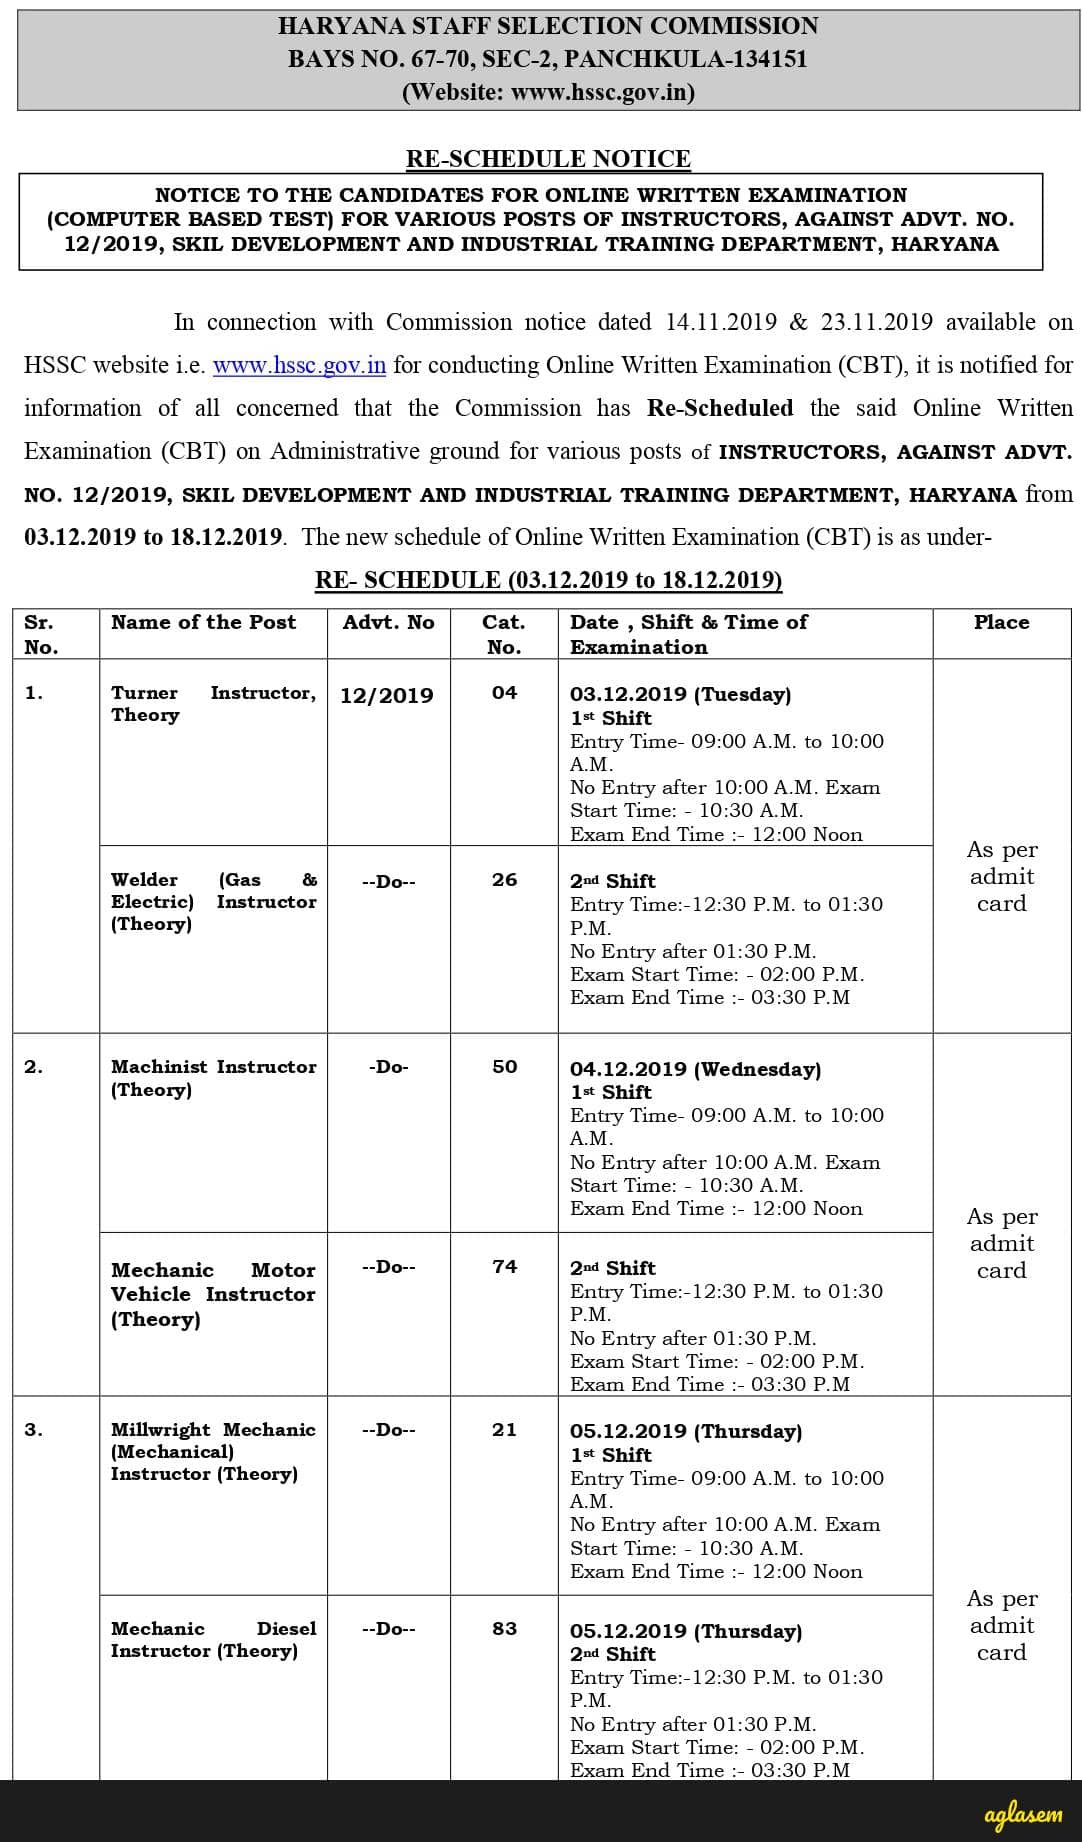 Haryana ITI Instructor 12/2019 exam date revised again; HSSC publishes new schedule